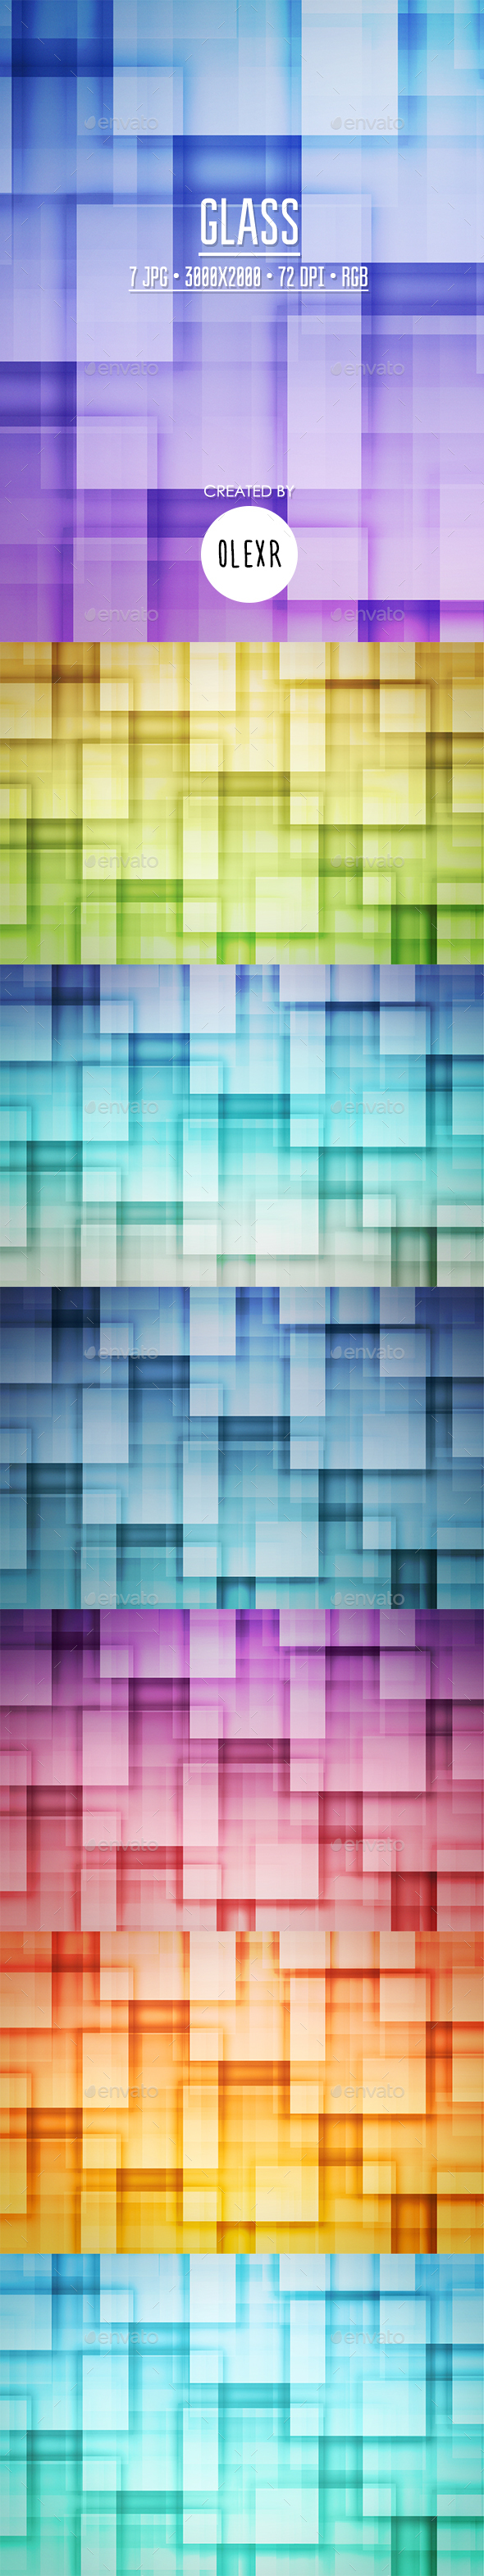 Glass Backgrounds - Abstract Backgrounds